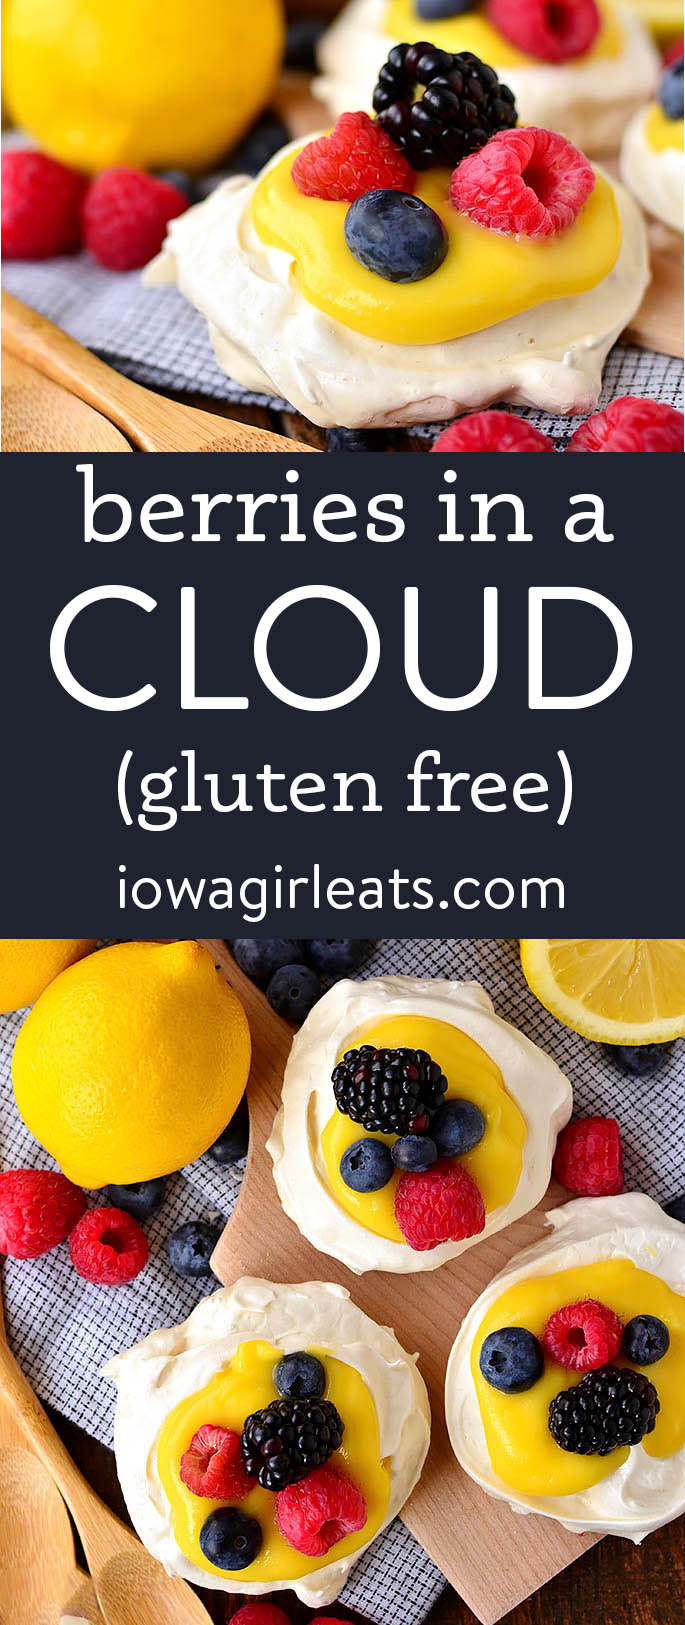 photo collage of berries in a cloud